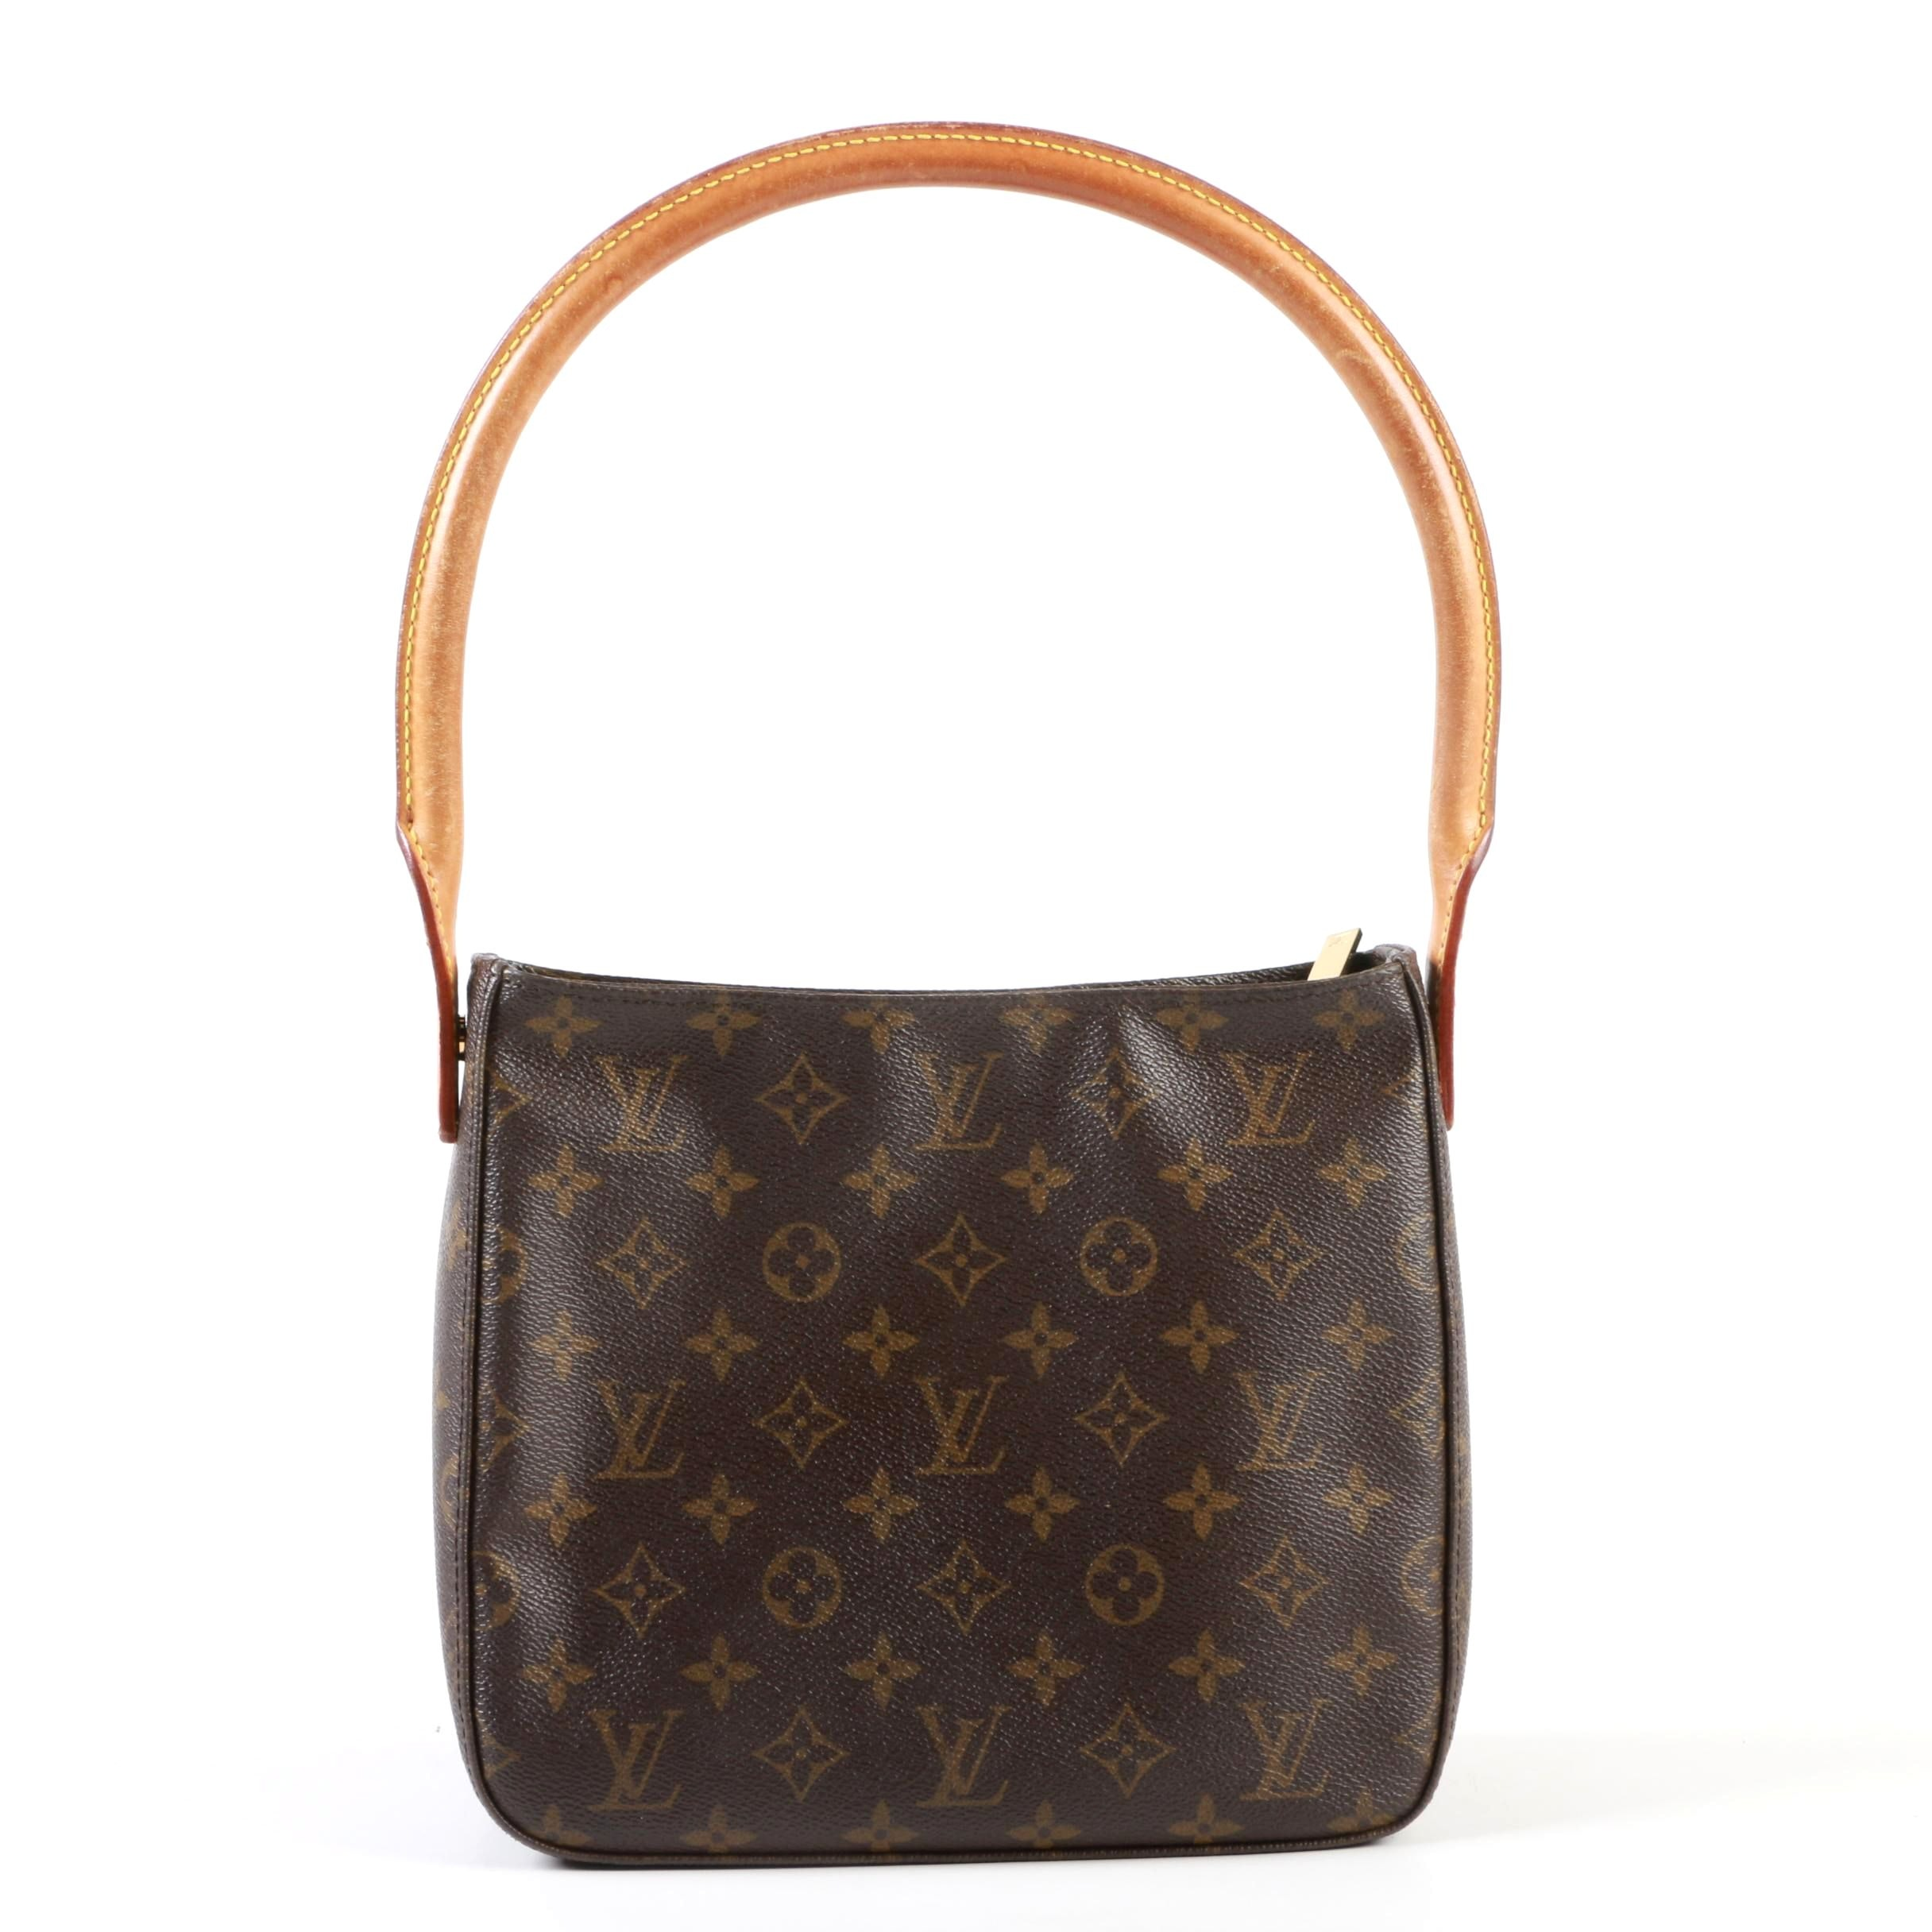 Louis Vuitton Paris Looping MM Handbag in Monogram Canvas